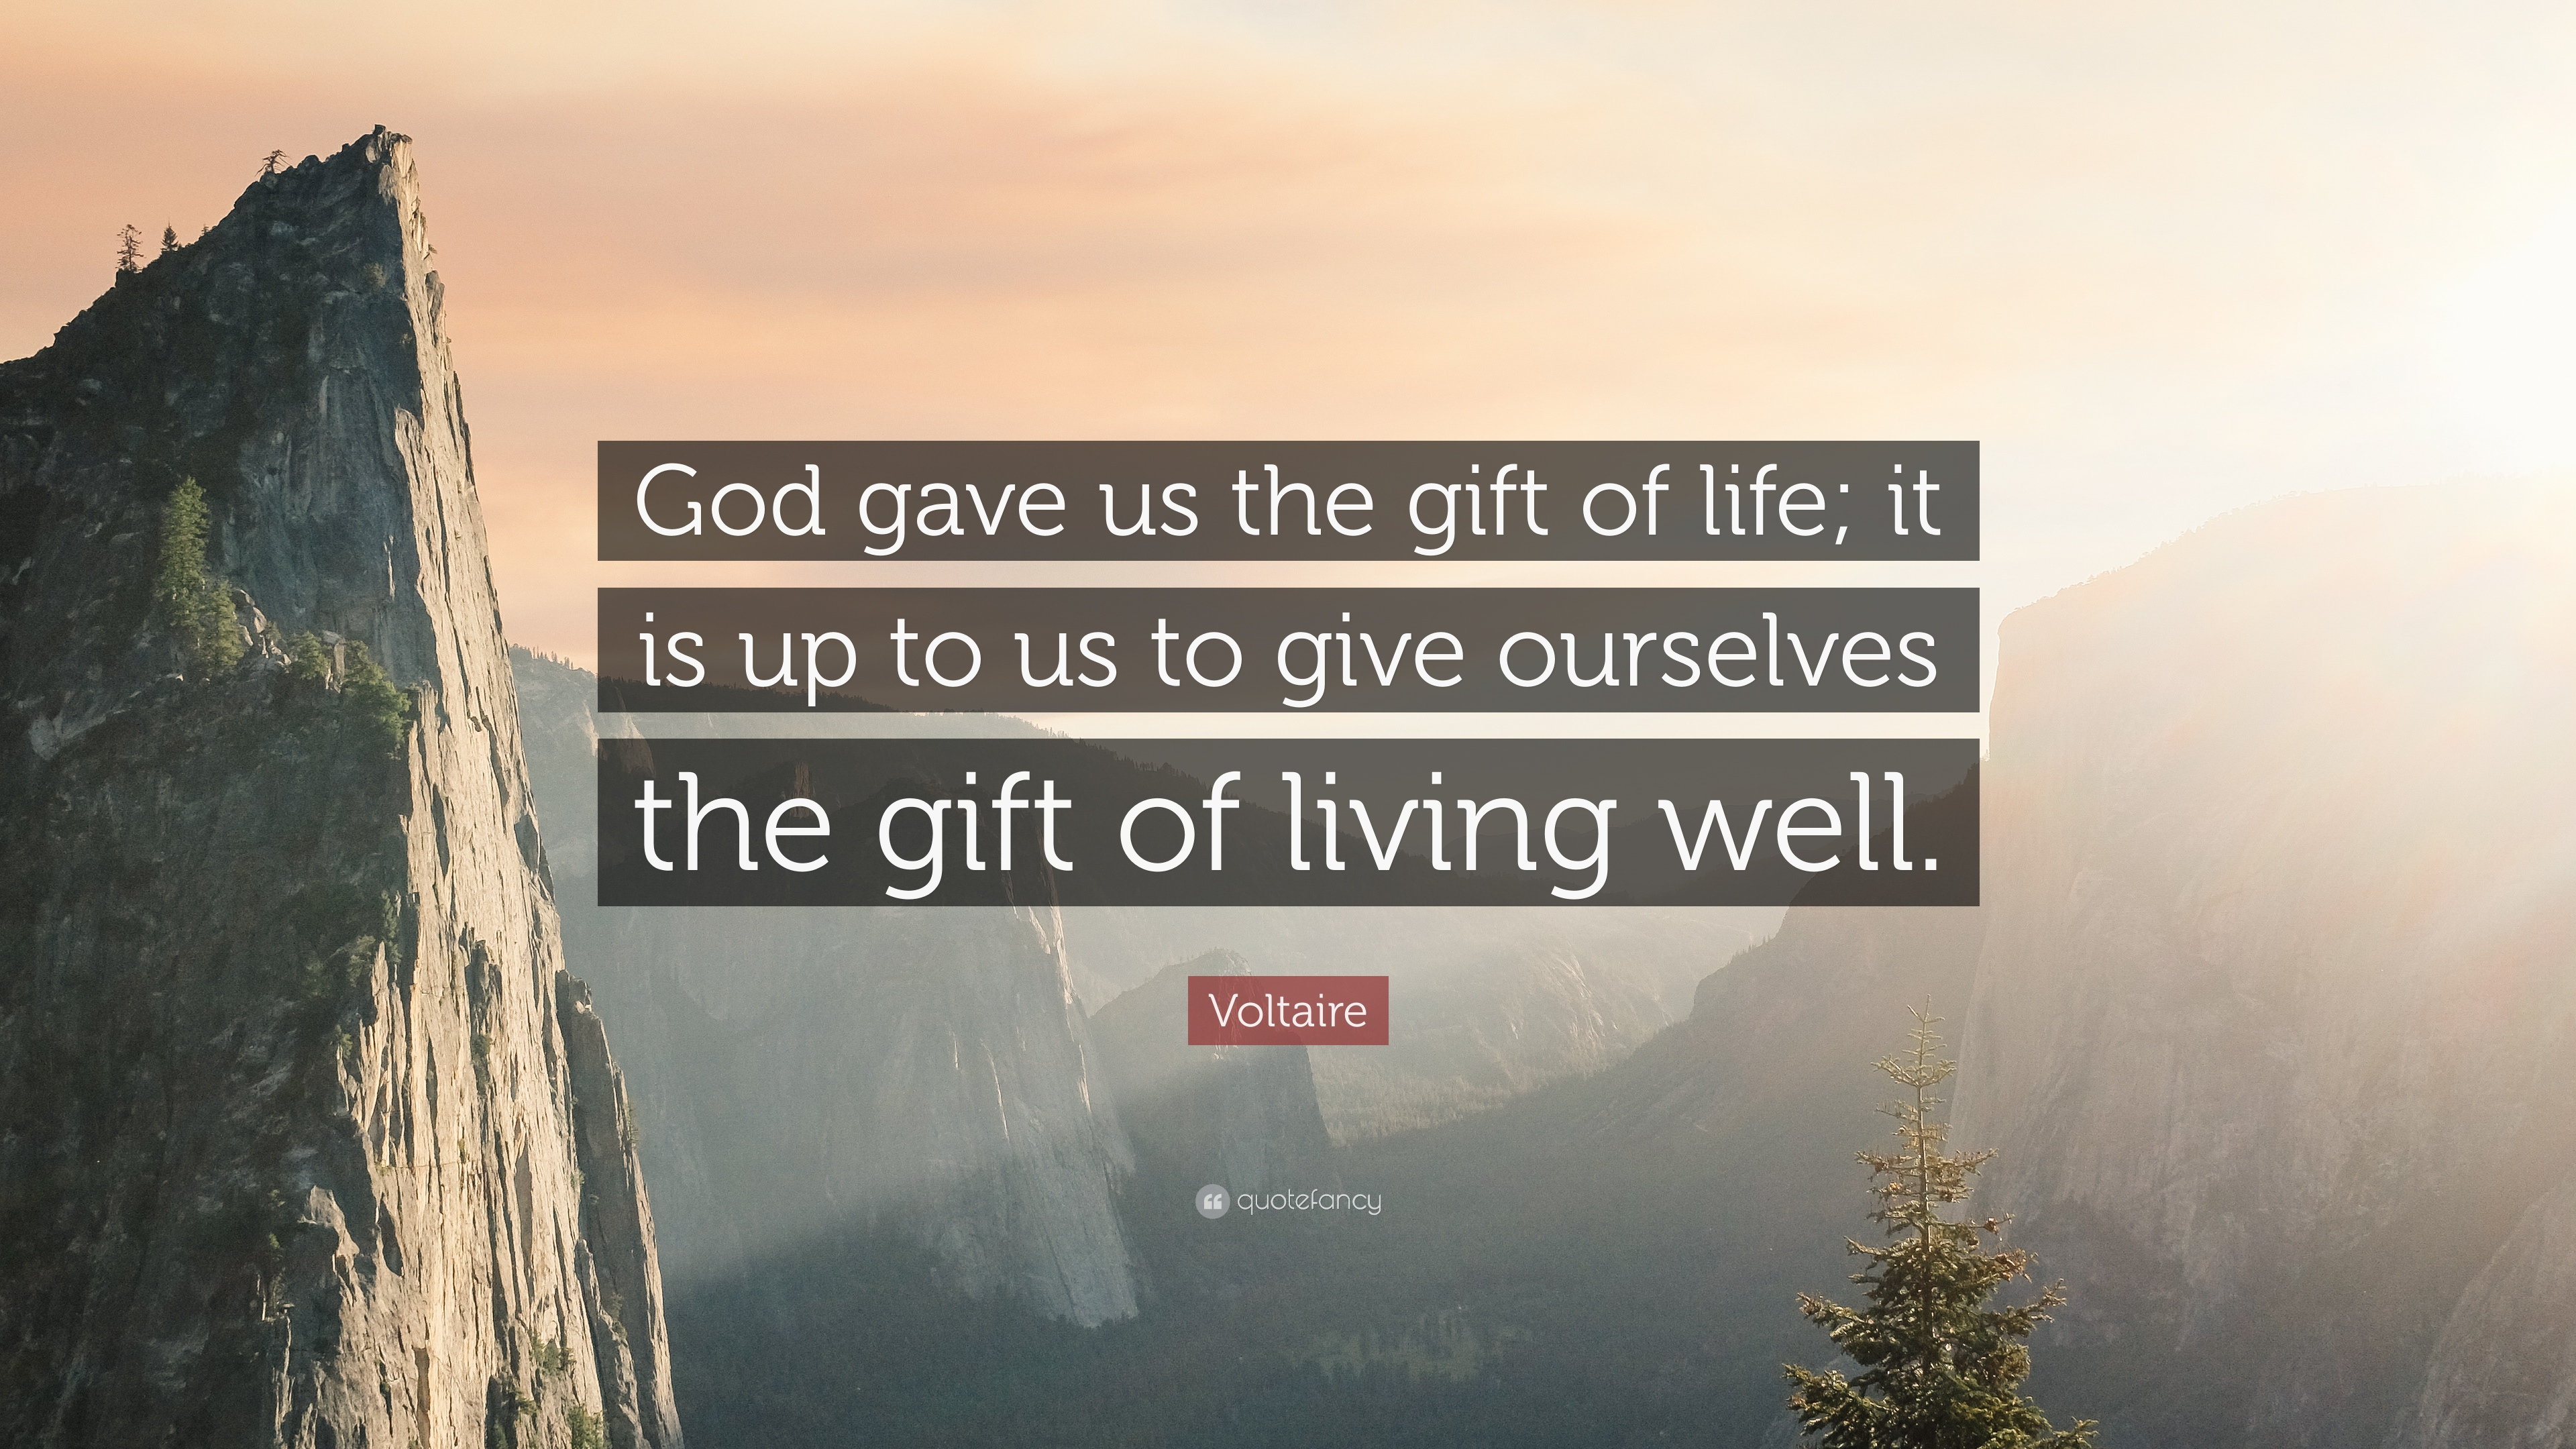 Voltaire quote god gave us the gift of life it is up to us to voltaire quote god gave us the gift of life it is up to negle Gallery